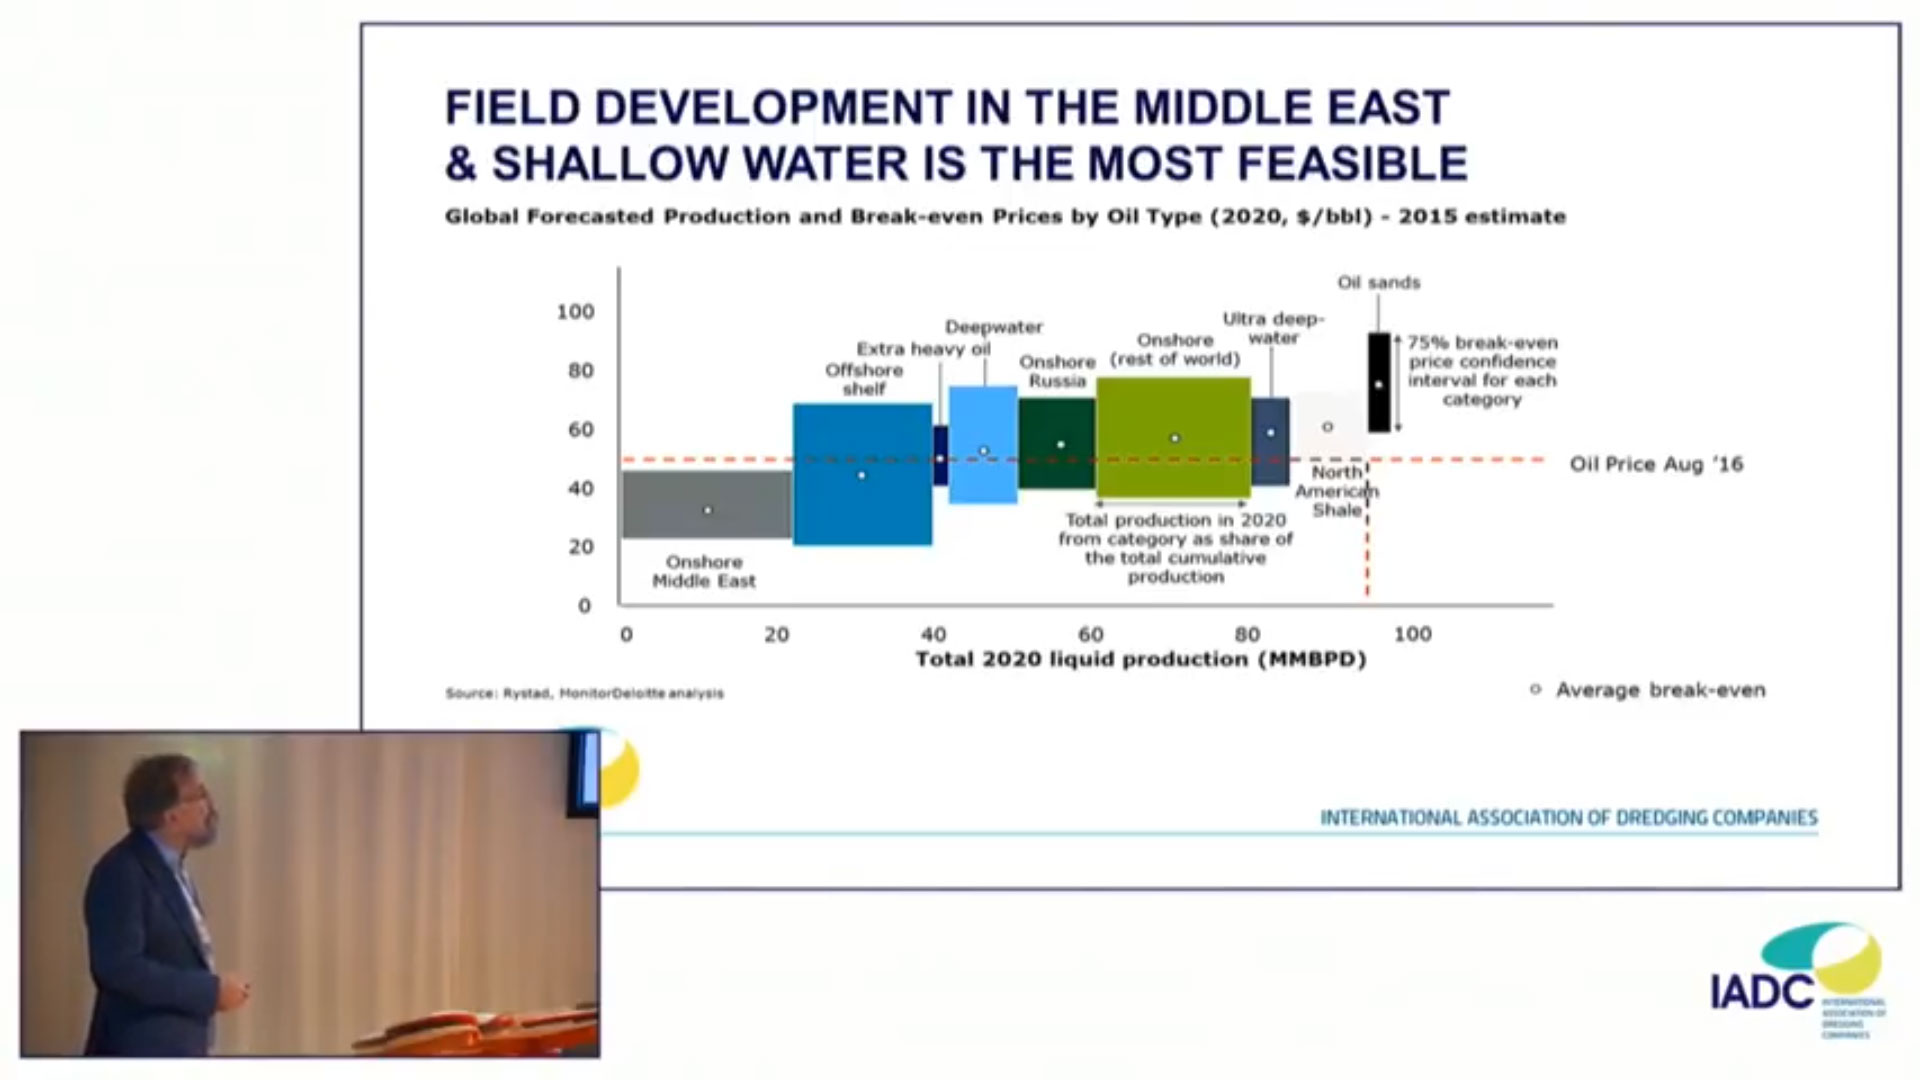 State of the dredging industry